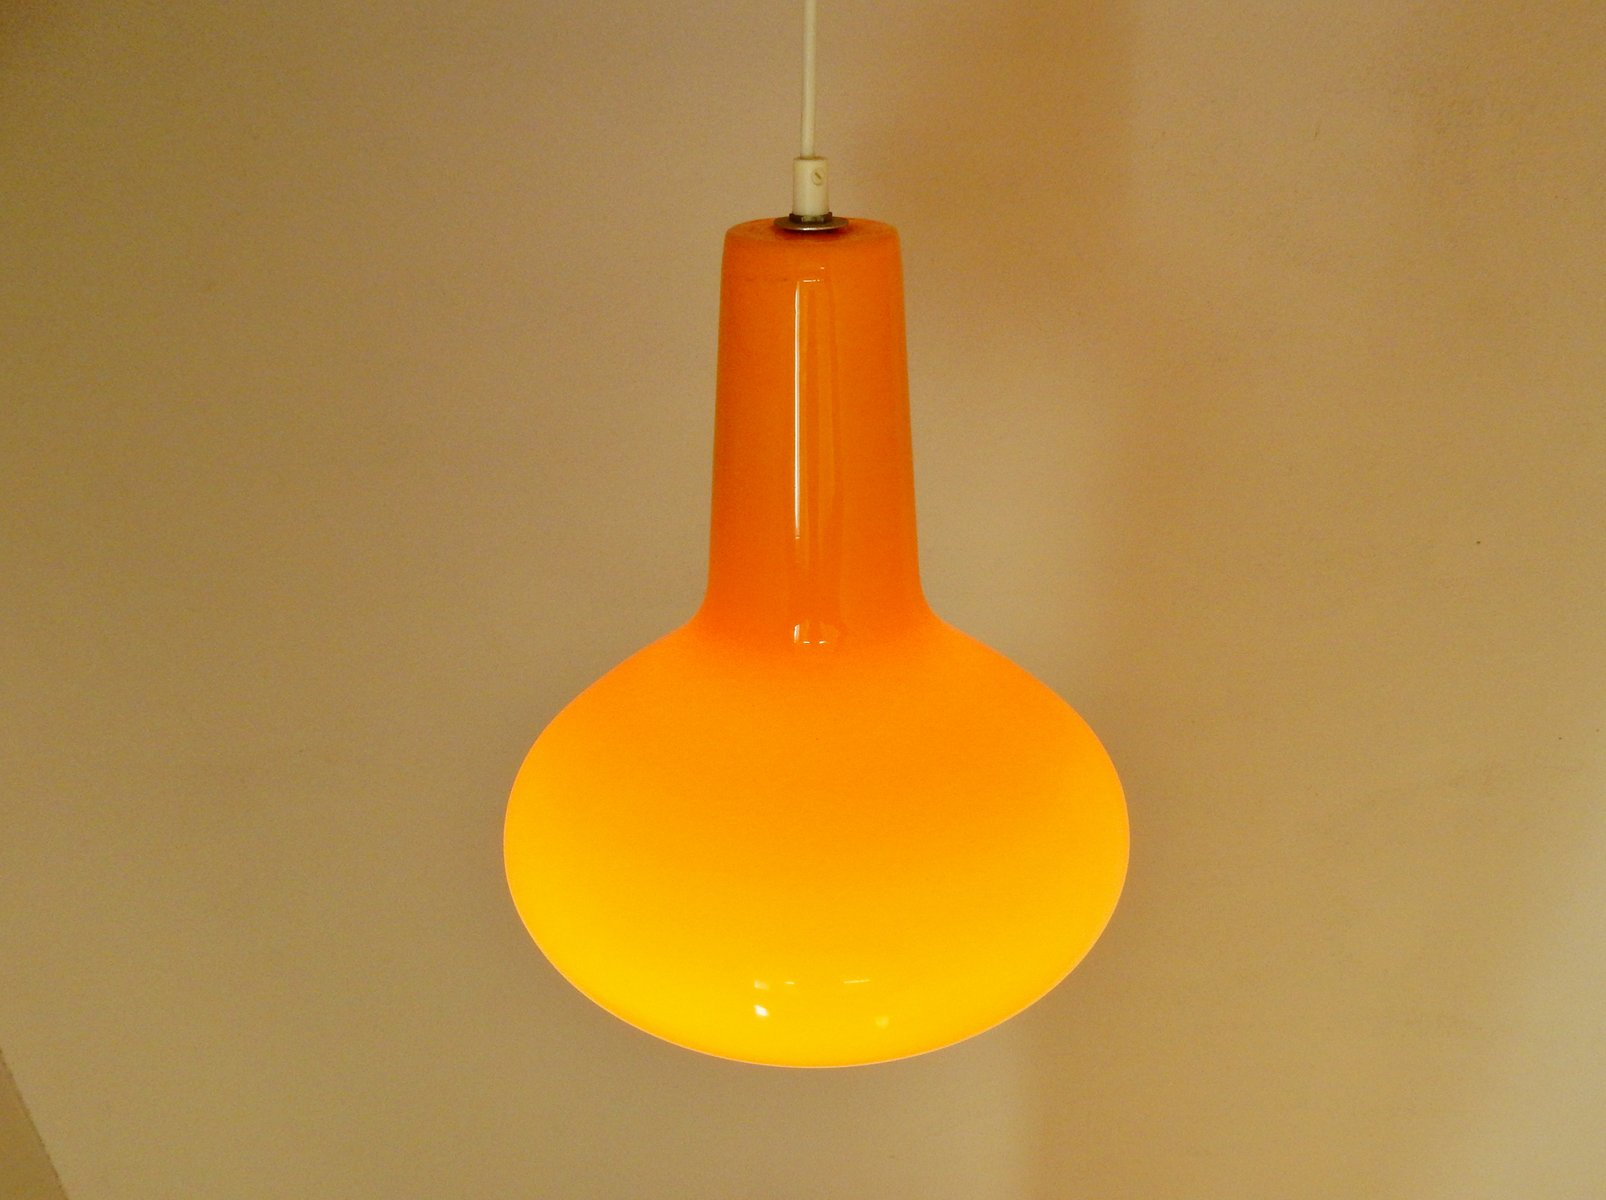 Orange italian glass pendant light by massimo vignelli for venini 1960s